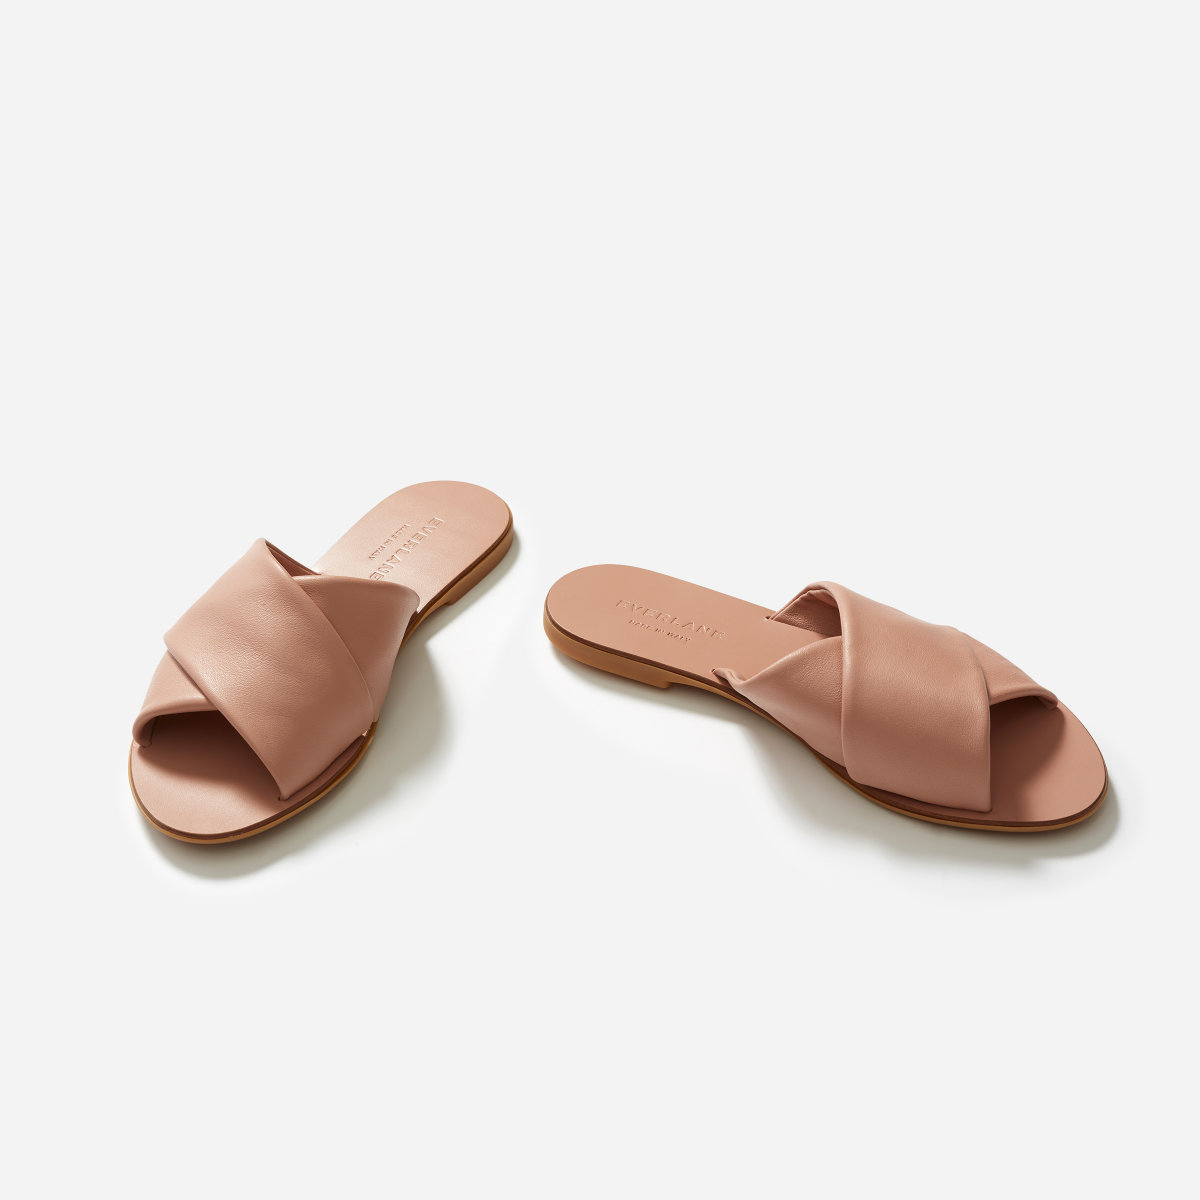 THE DAY CROSSOVER SANDALS IN ROSE $88 -